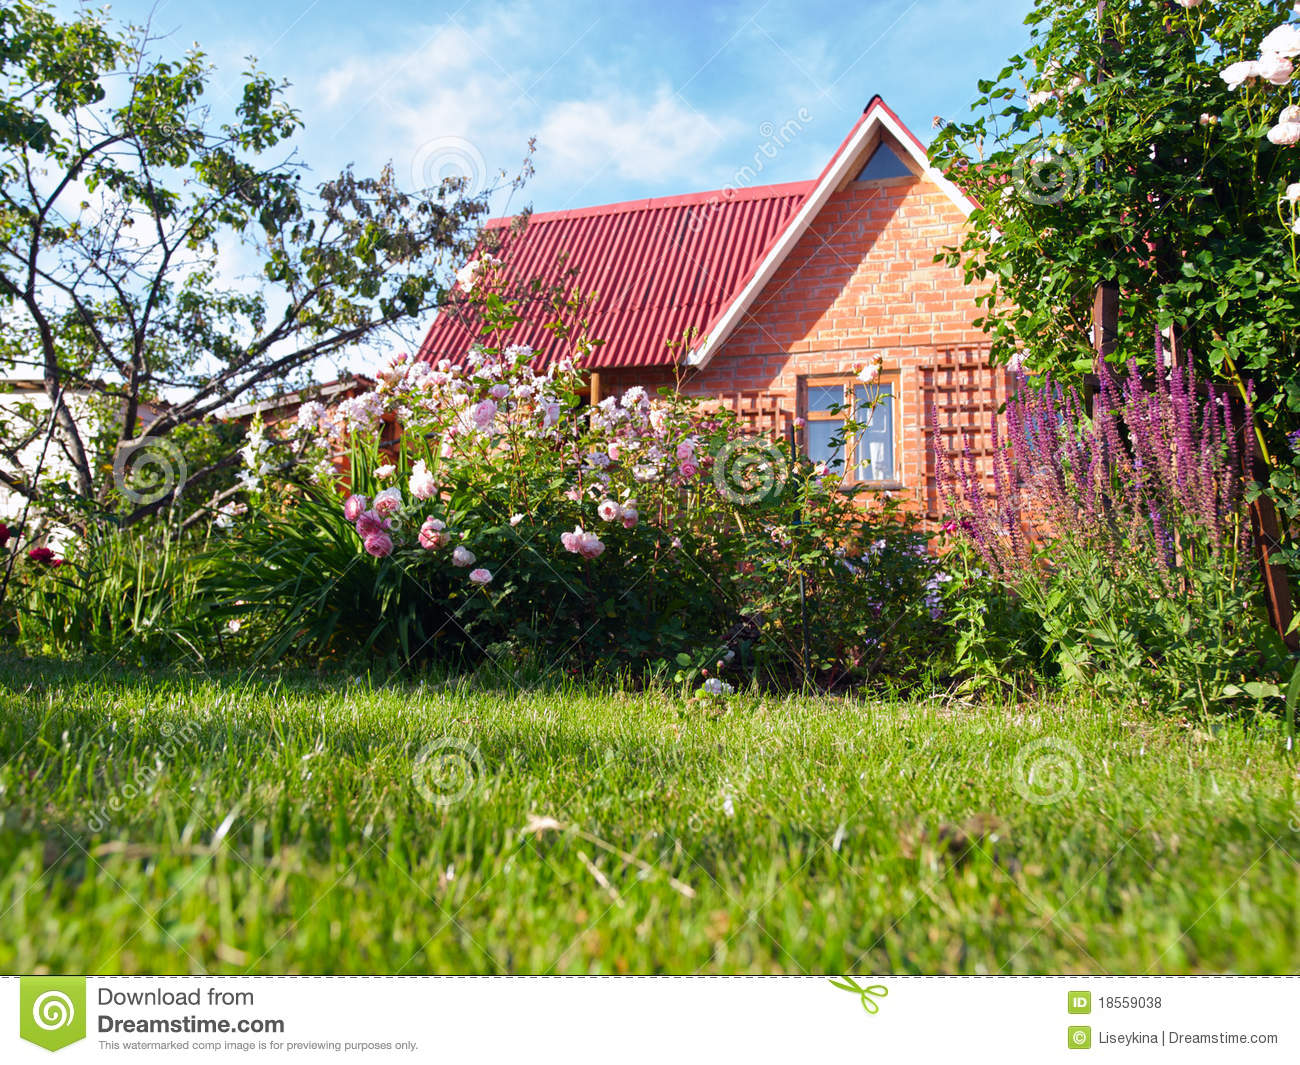 Astounding Small House In A Flower Garden Royalty Free Stock Photos Image Largest Home Design Picture Inspirations Pitcheantrous